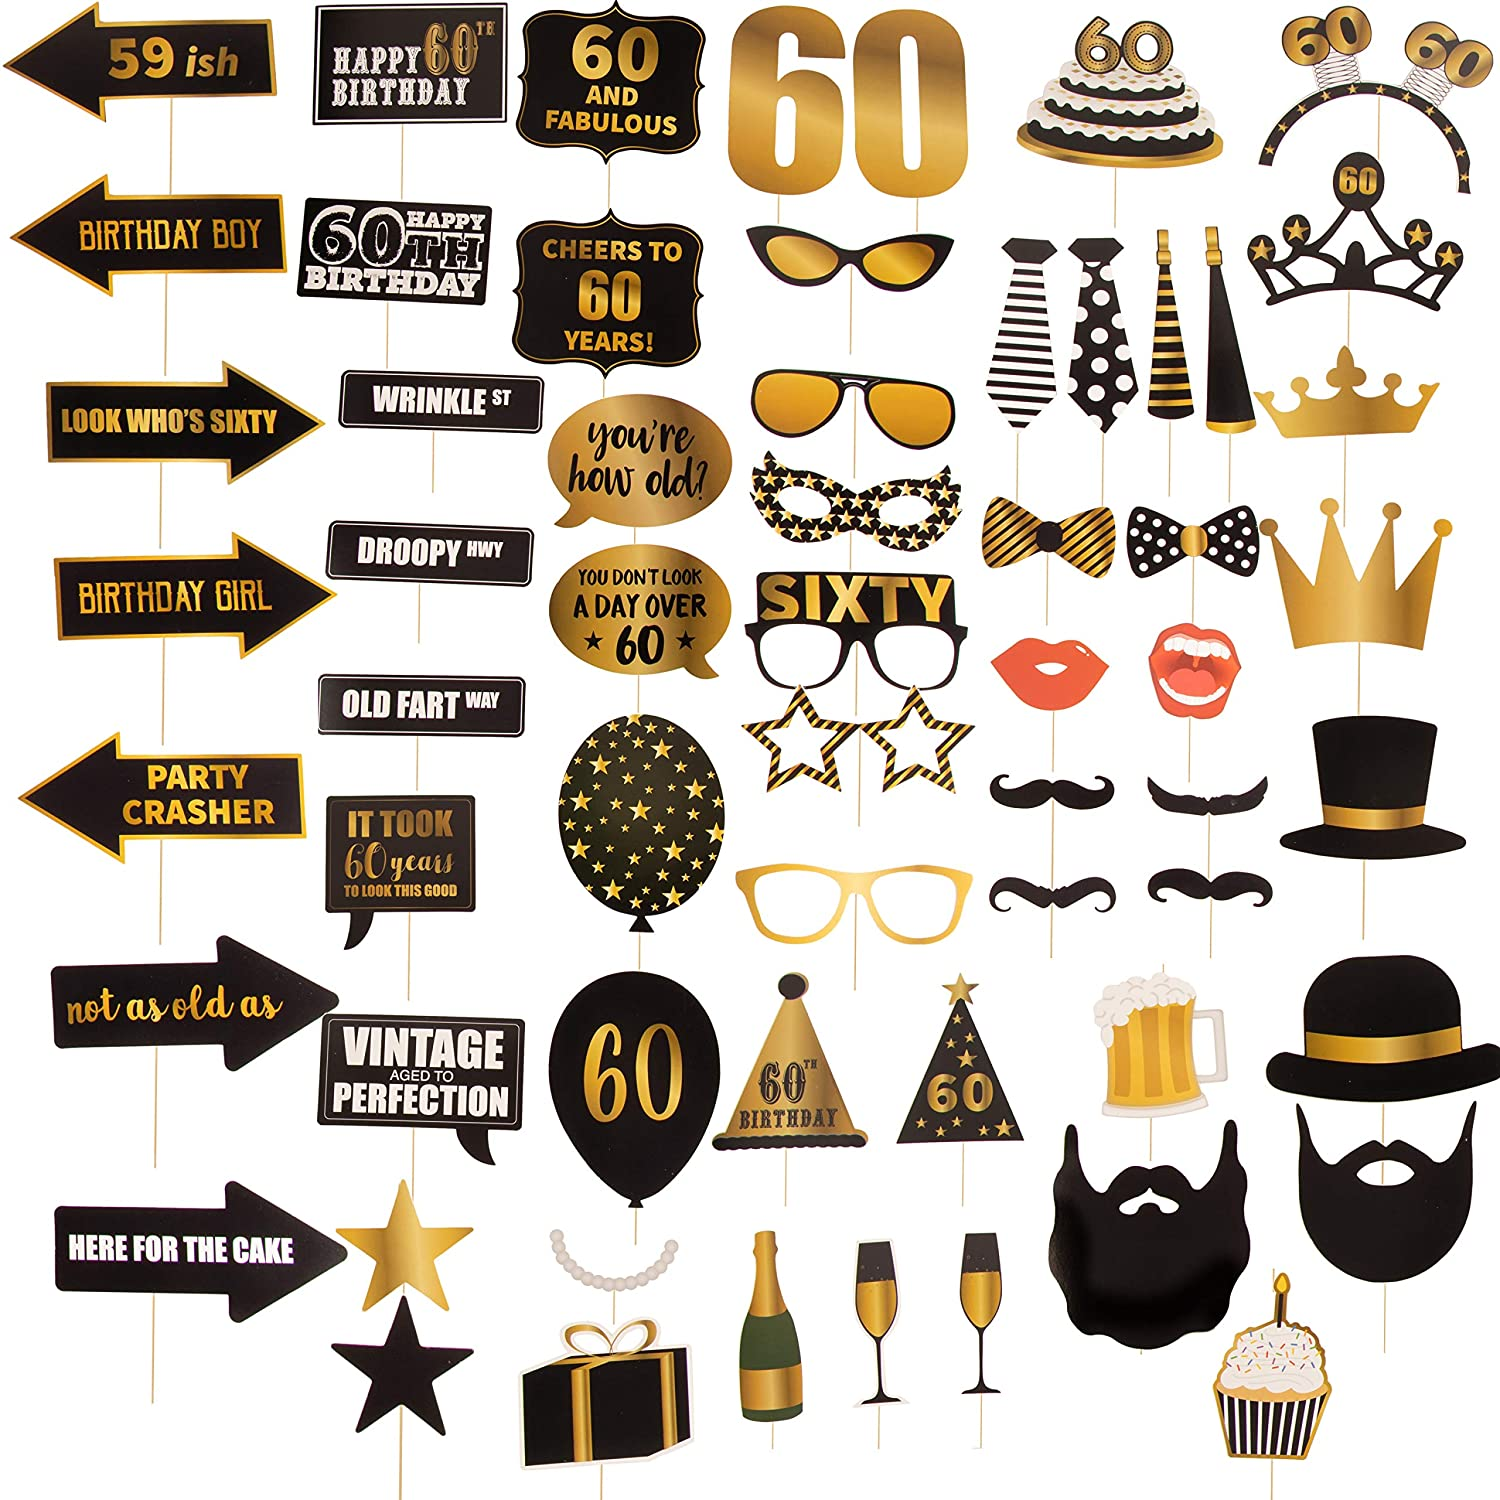 60th Birthday Party Photo Booth Props - 60-Piece Selfie Props for Her Him, Big 60 Birthday Decorations for Men and Women, Gold and Black Juvale